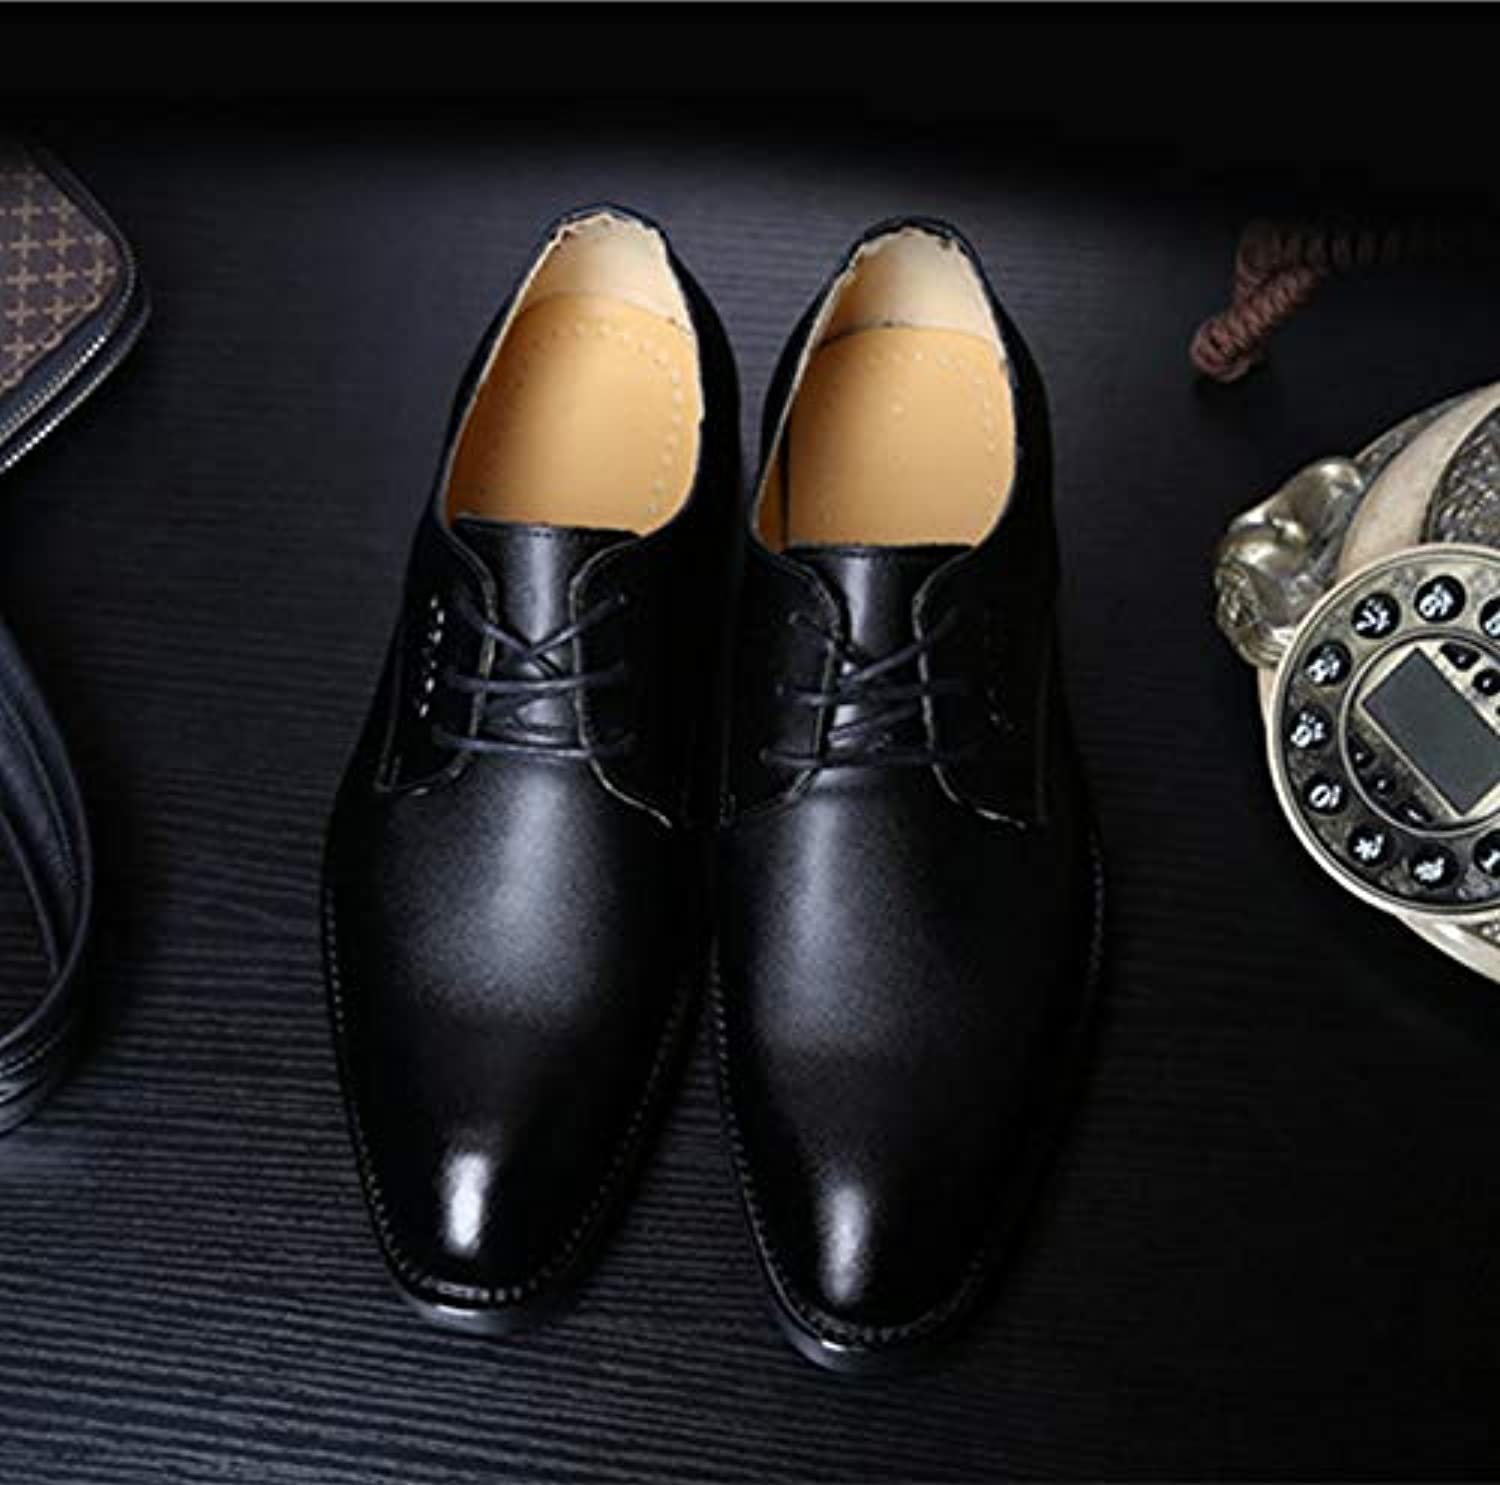 LOVDRAM Men'S Leather shoes Spring New Leather Men'S shoes Taobao Men'S Casual shoes Fashion Pointed Men'S shoes